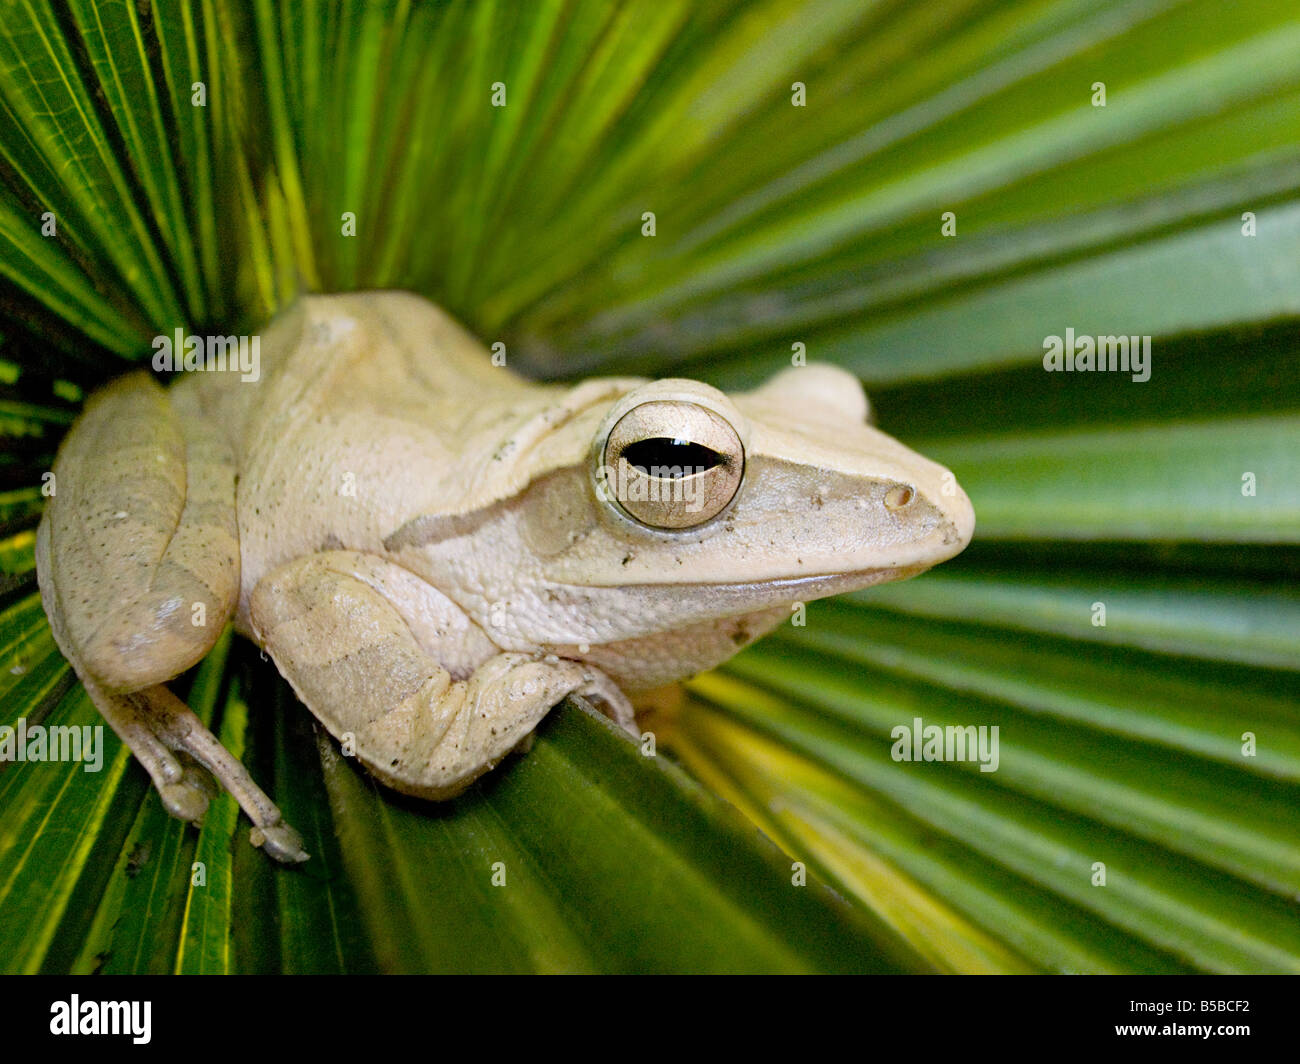 Close-up of frog, Vietnam, South East Asia - Stock Image